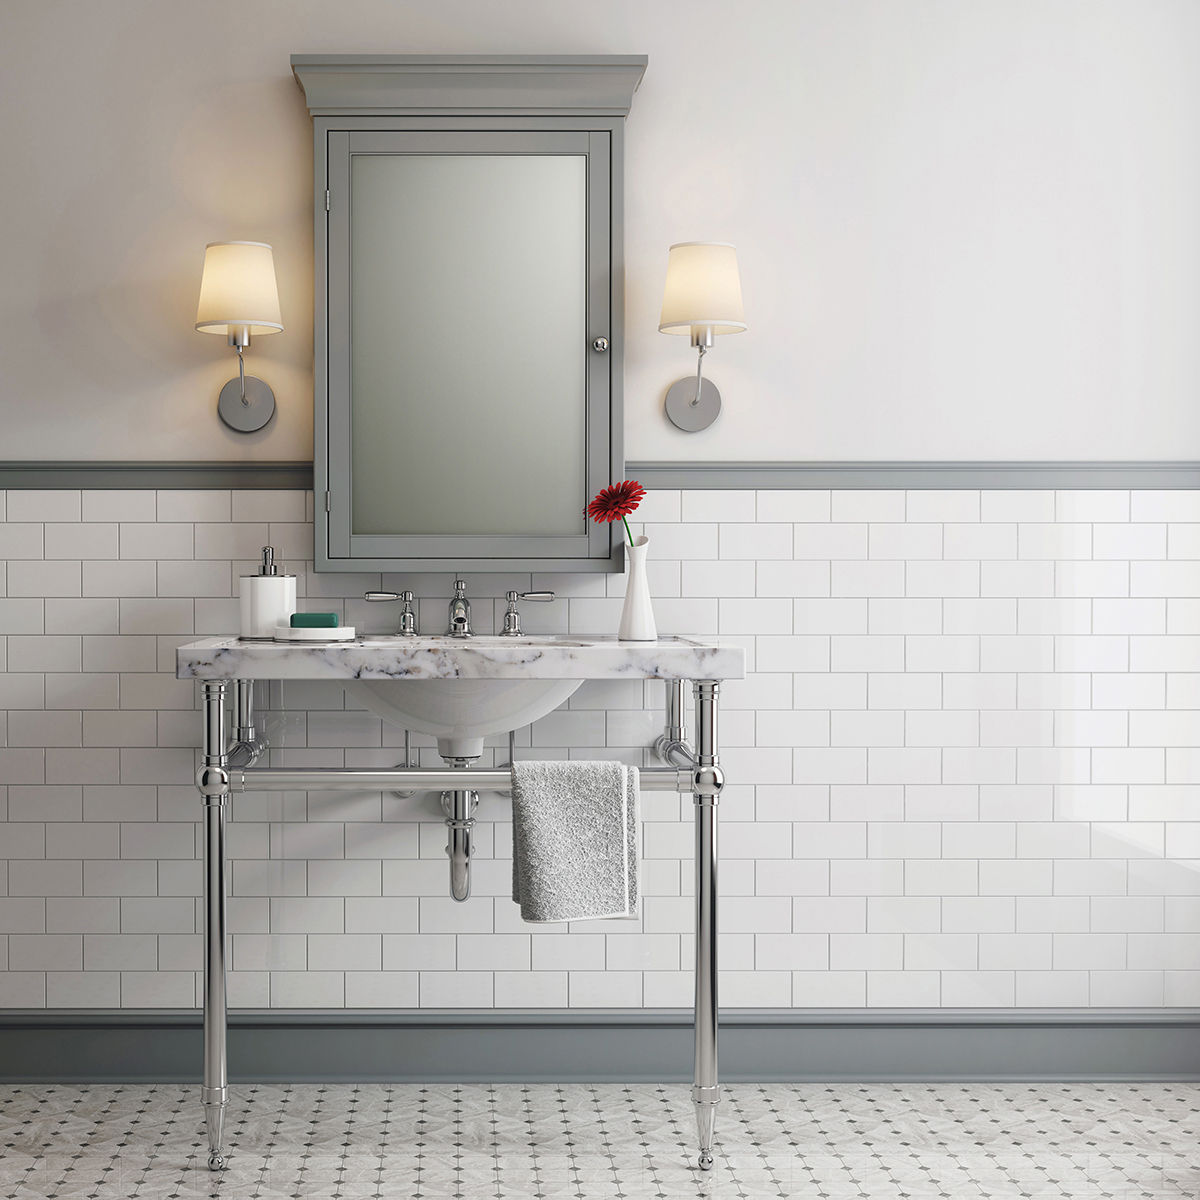 Subway Tiled Bathrooms A Tapered Foot Style Leg System In A Classic Subway Tile Bathroom